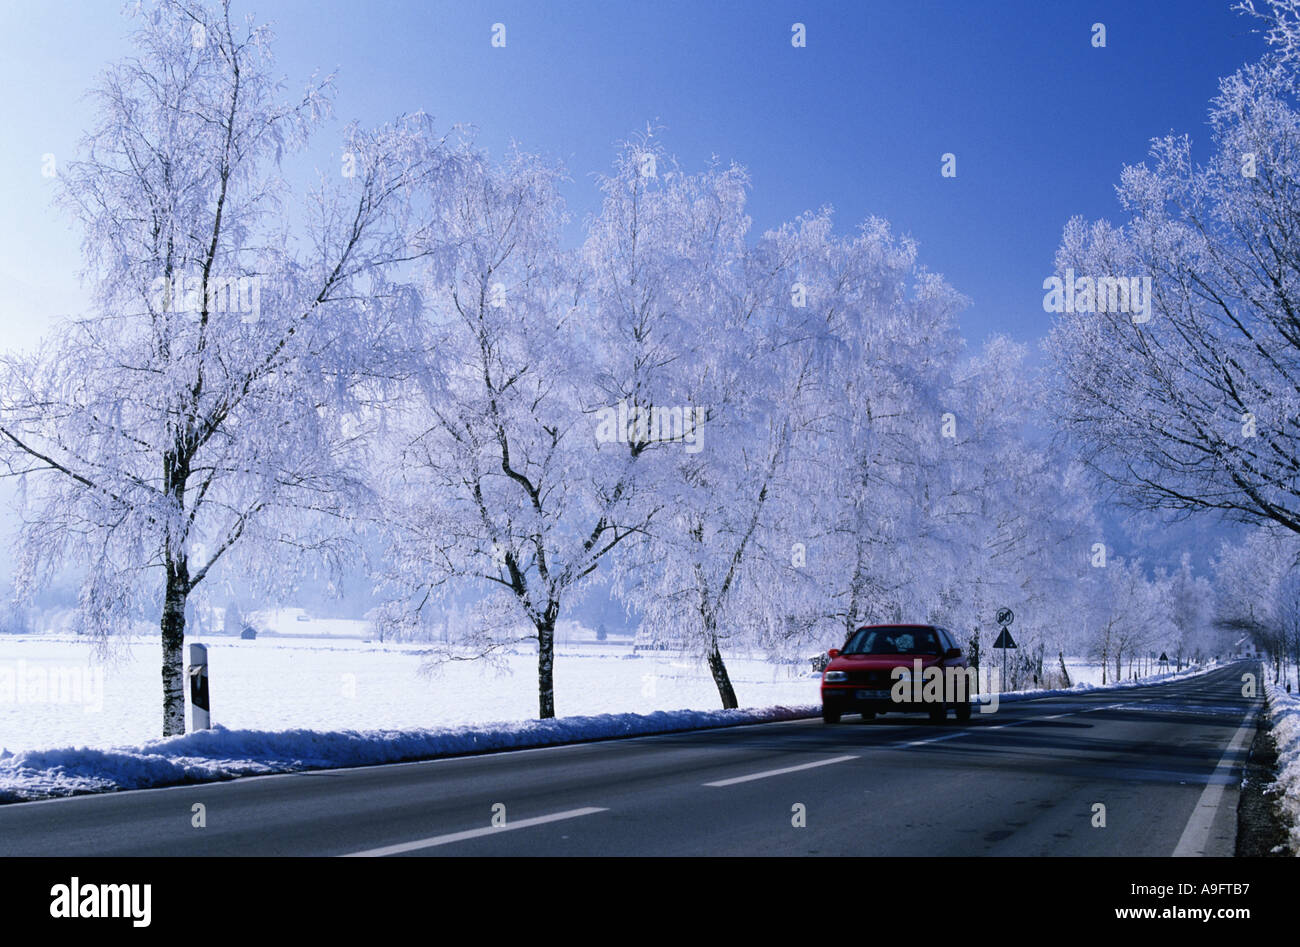 birches at a country road, covered with whitefrost, car approaching, Germany, Bavaria. Stock Photo